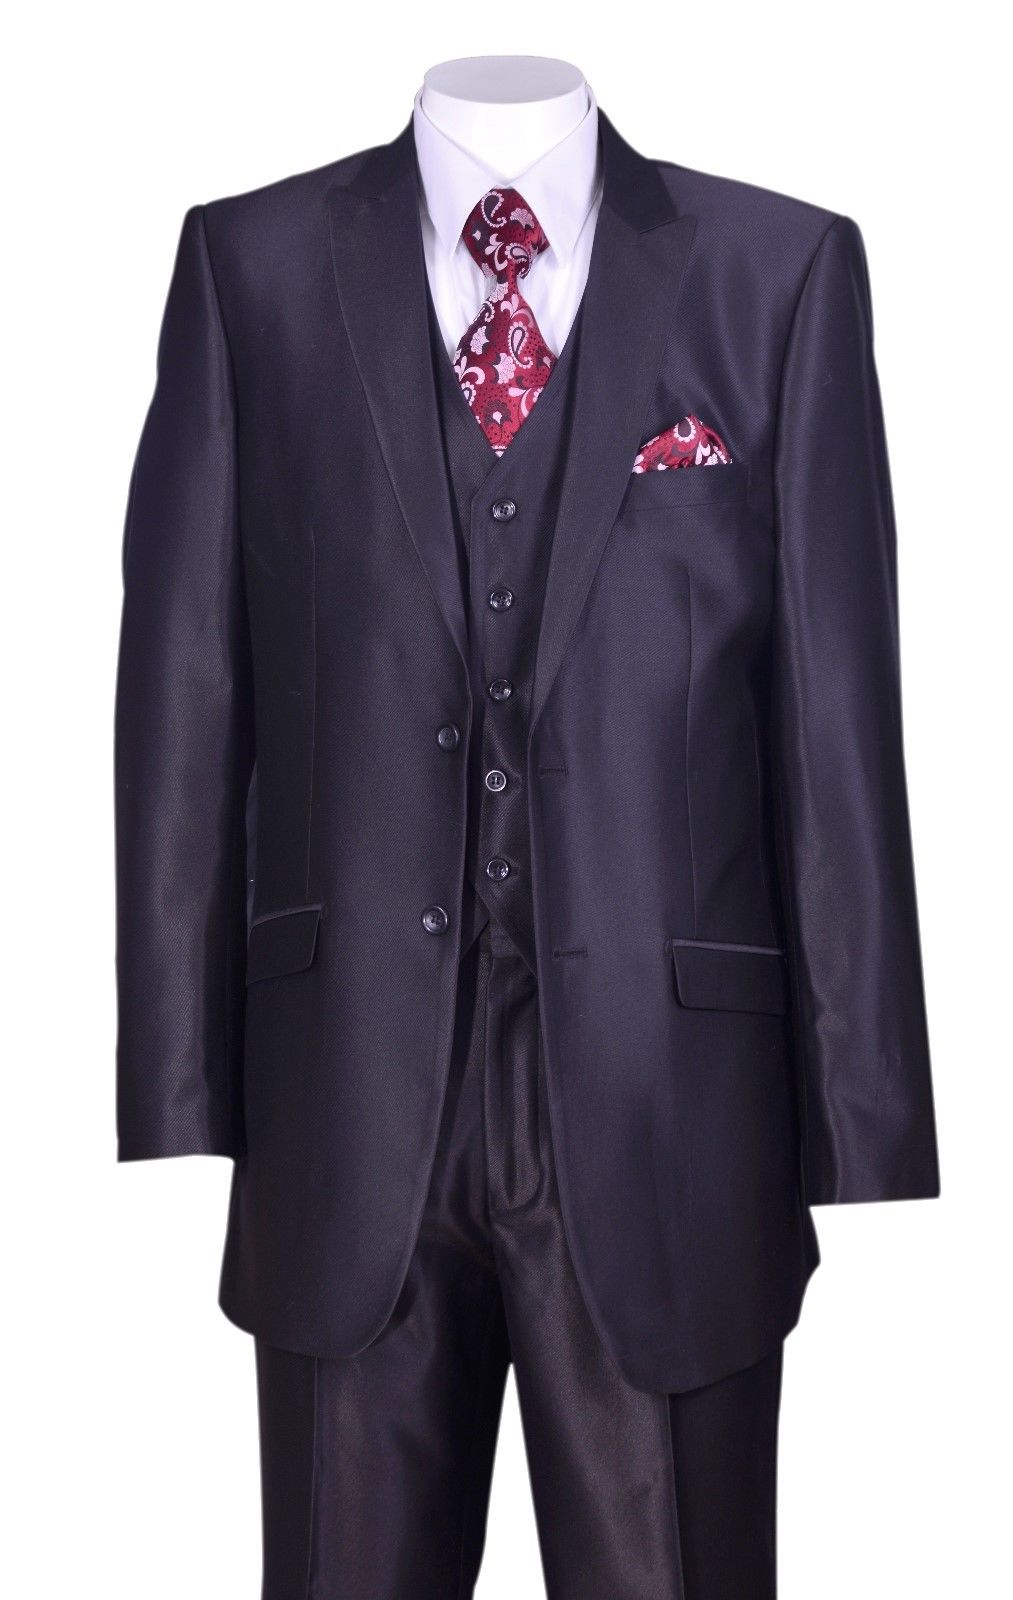 Fortino Landi Men Suit 5702V2-Black - Church Suits For Less